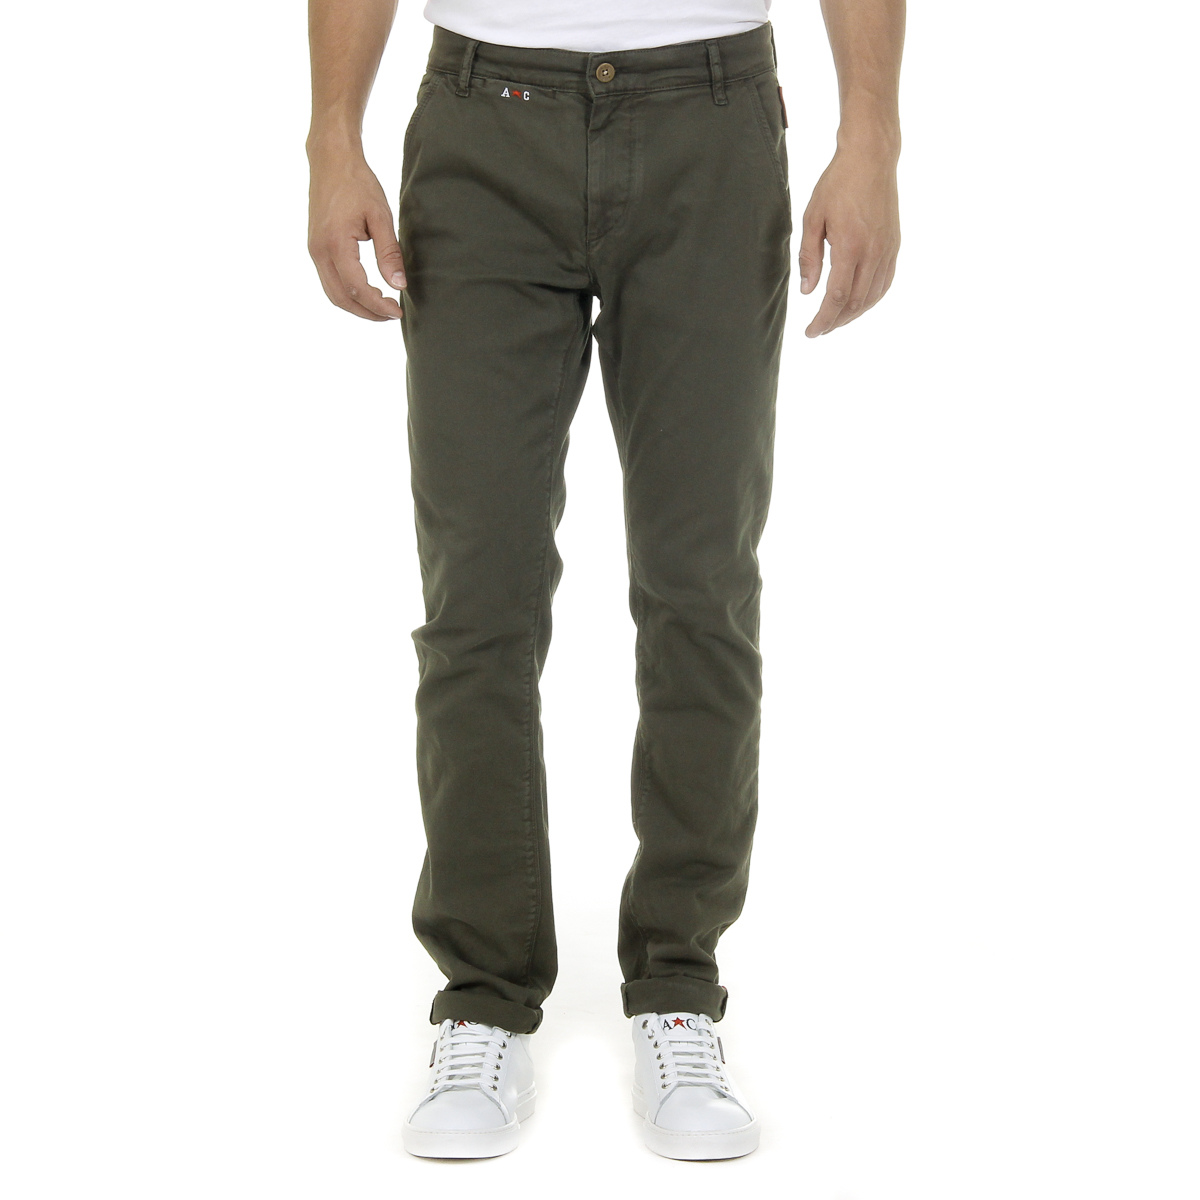 Primary image for Andrew Charles Mens Pants Green AMARA